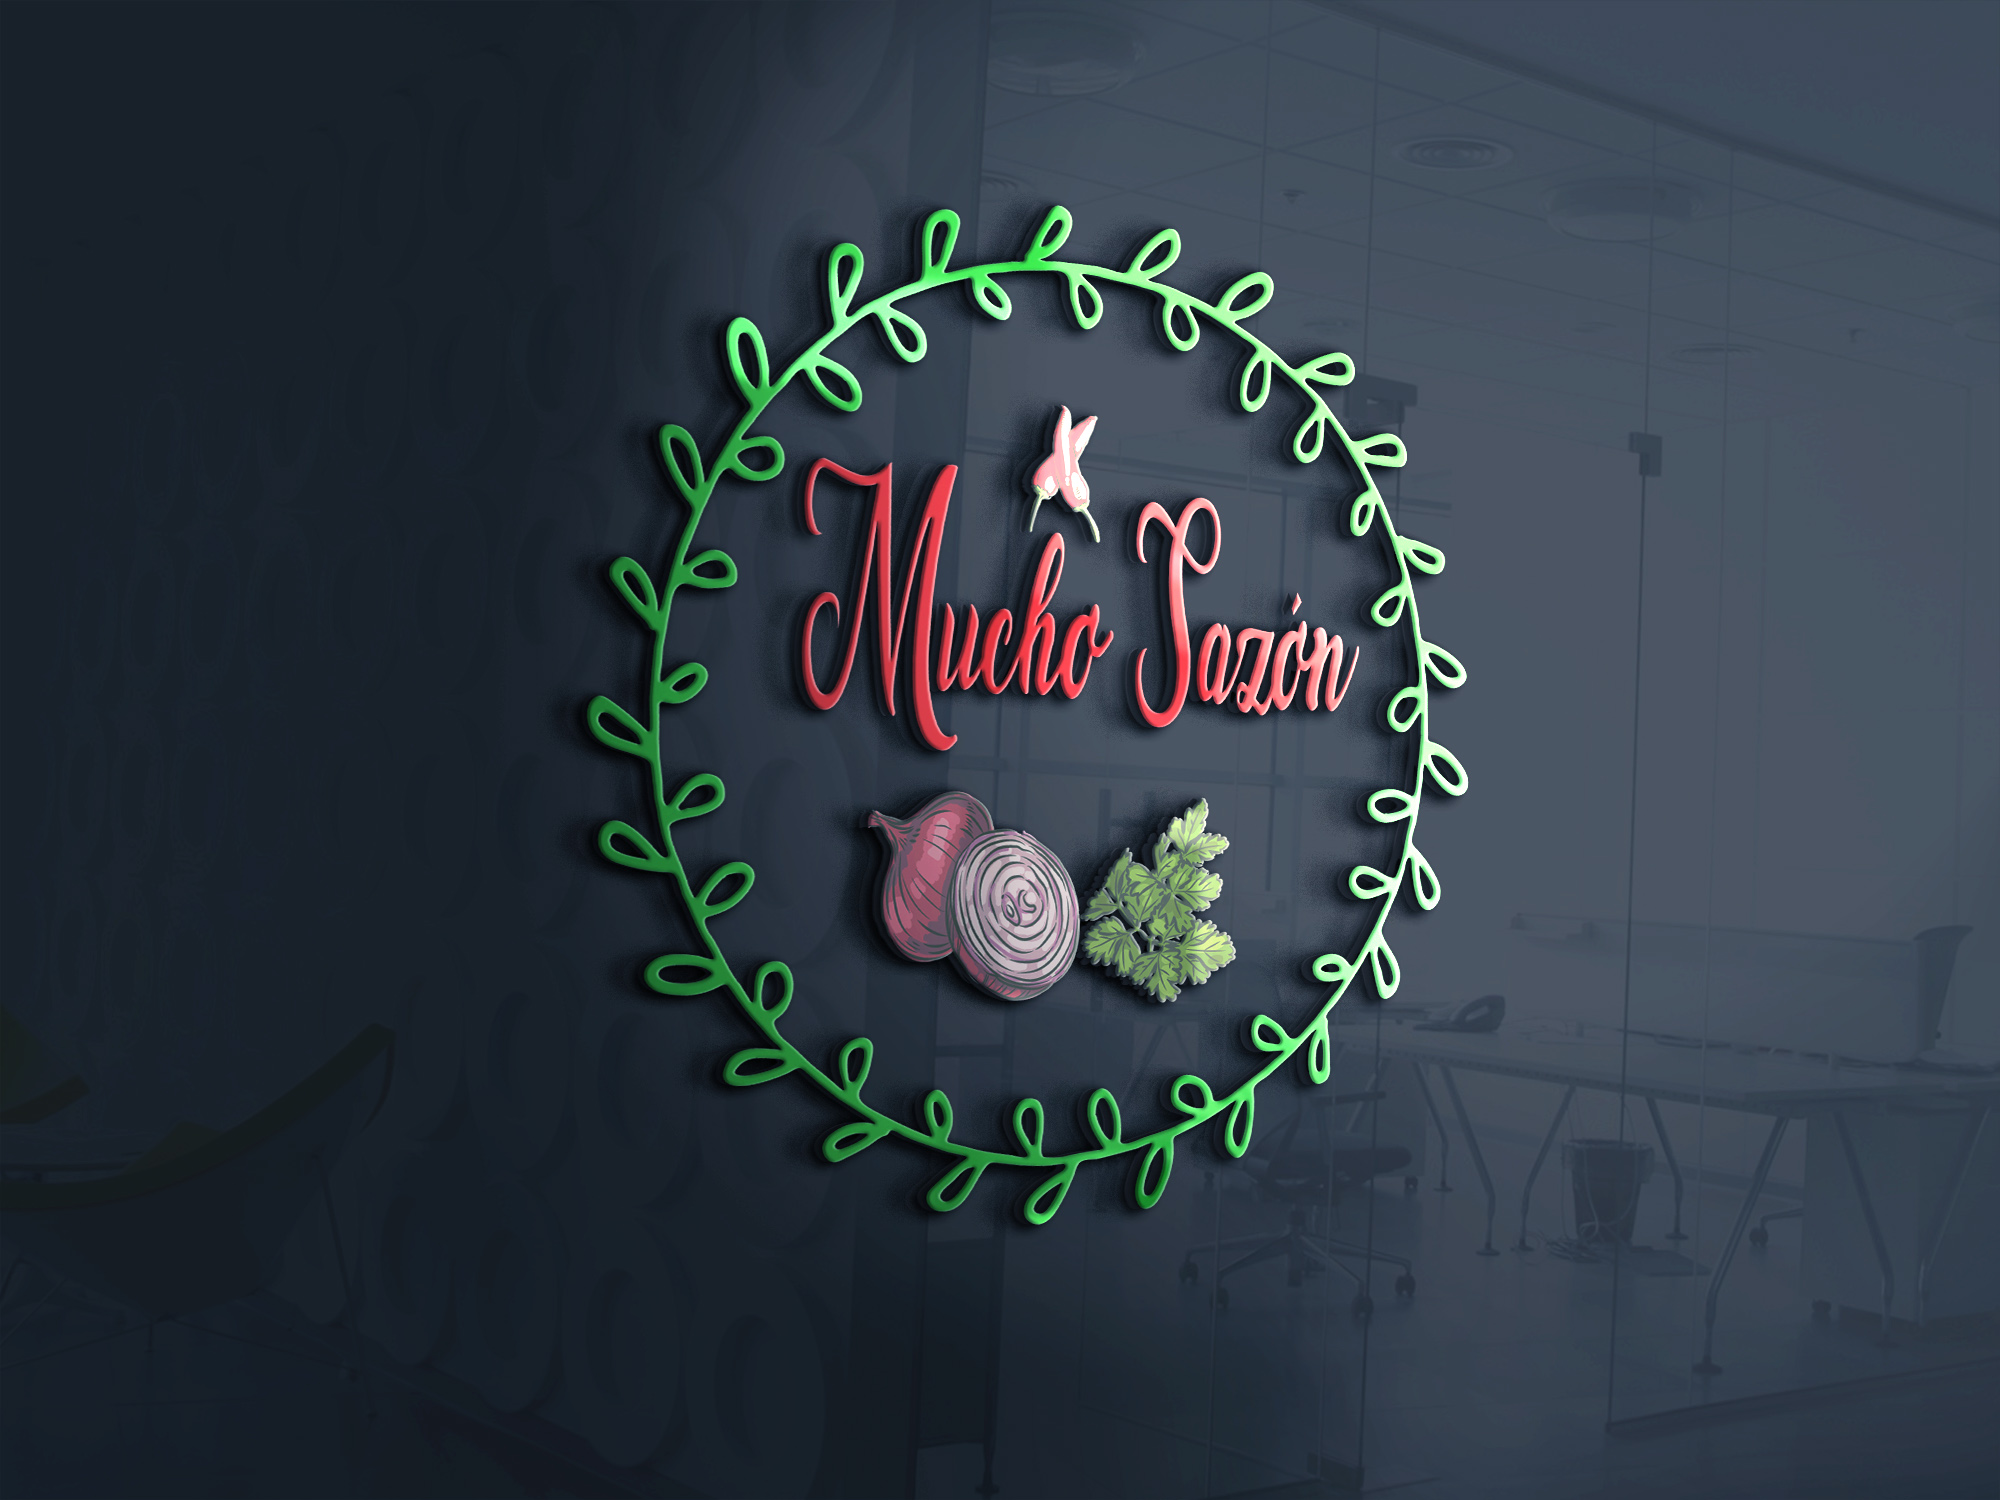 (3-4 Concepts) CREATIVE and MODERN logo designer in 24hrs